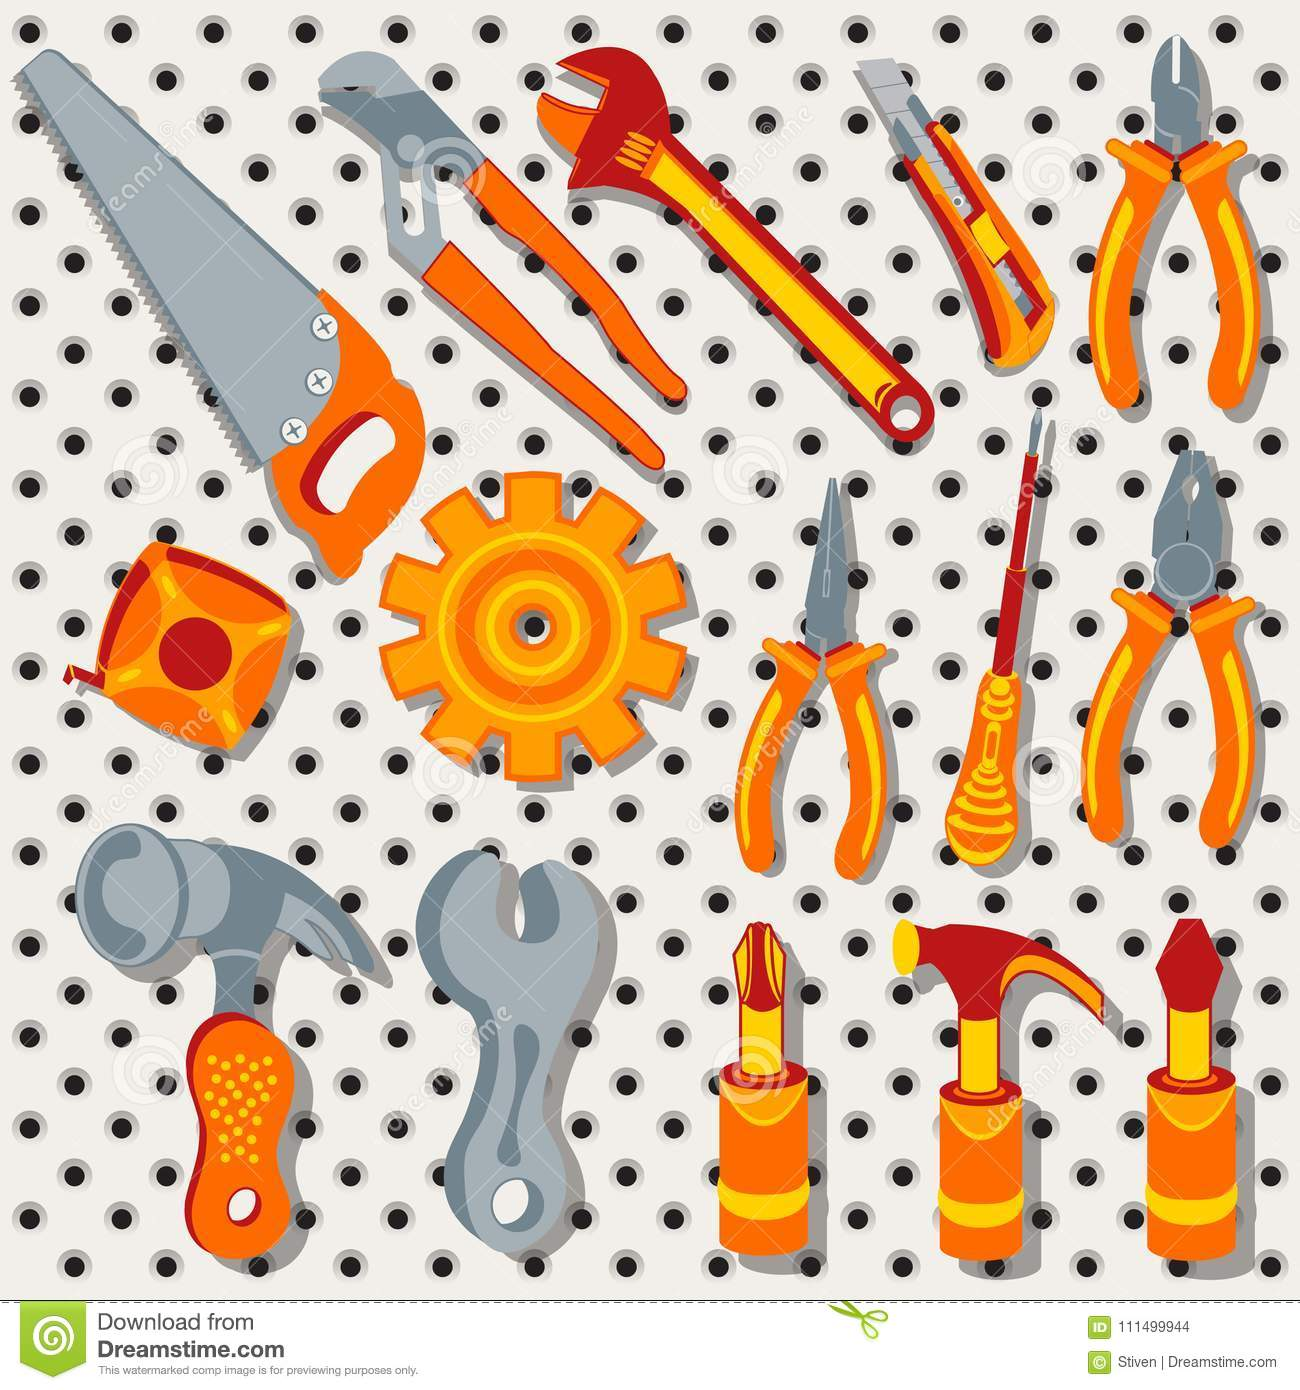 Collection of different tools over metal background, 3